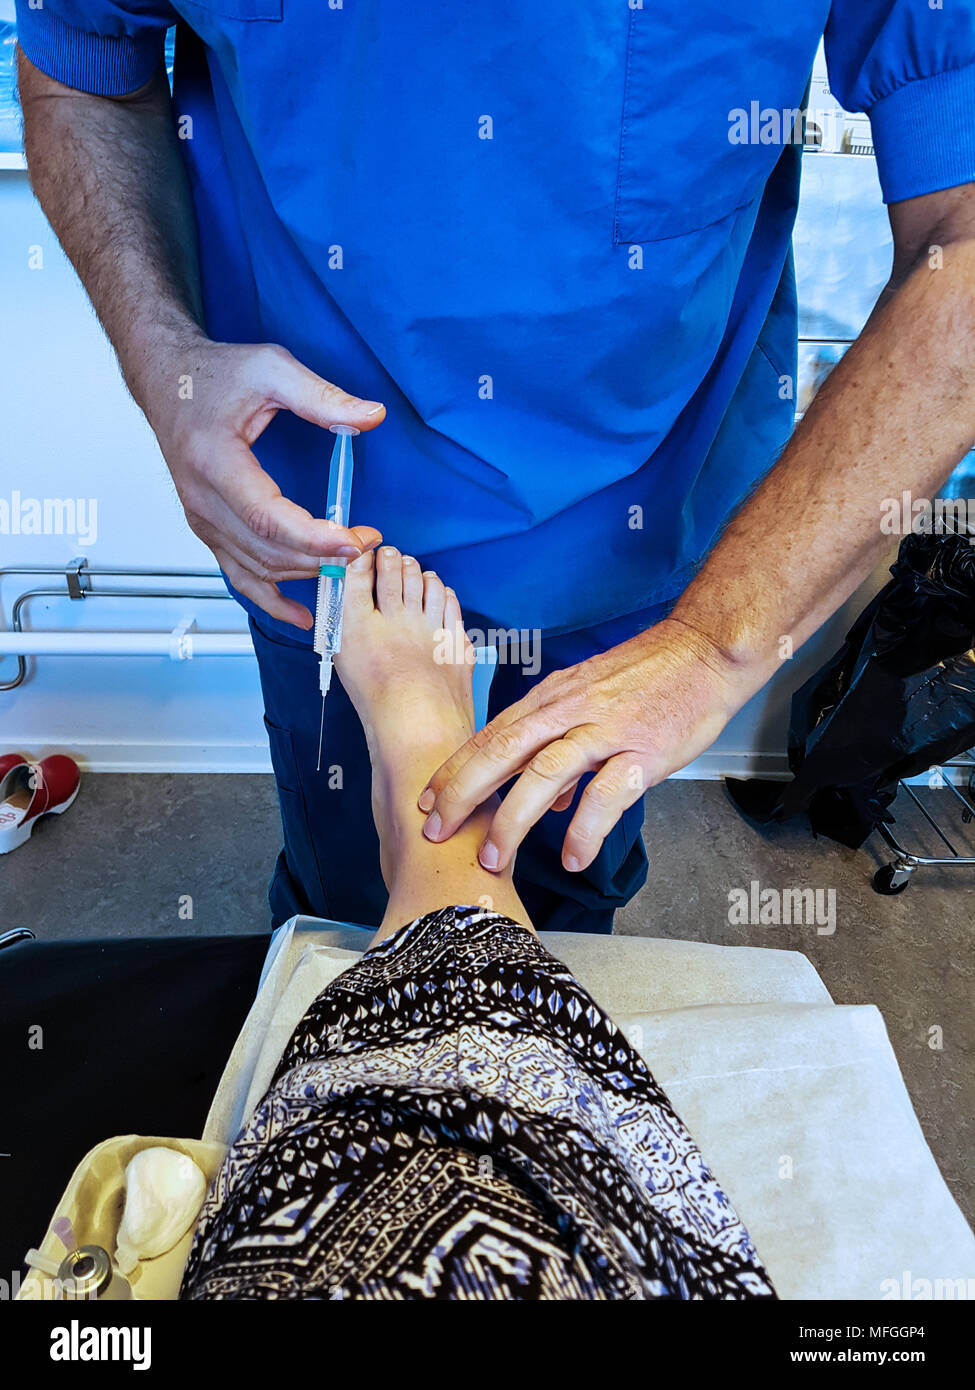 A doctor is injecting local anesthetic in the patients foot in preparation for surgery of a tailor's bunion. - Stock Image